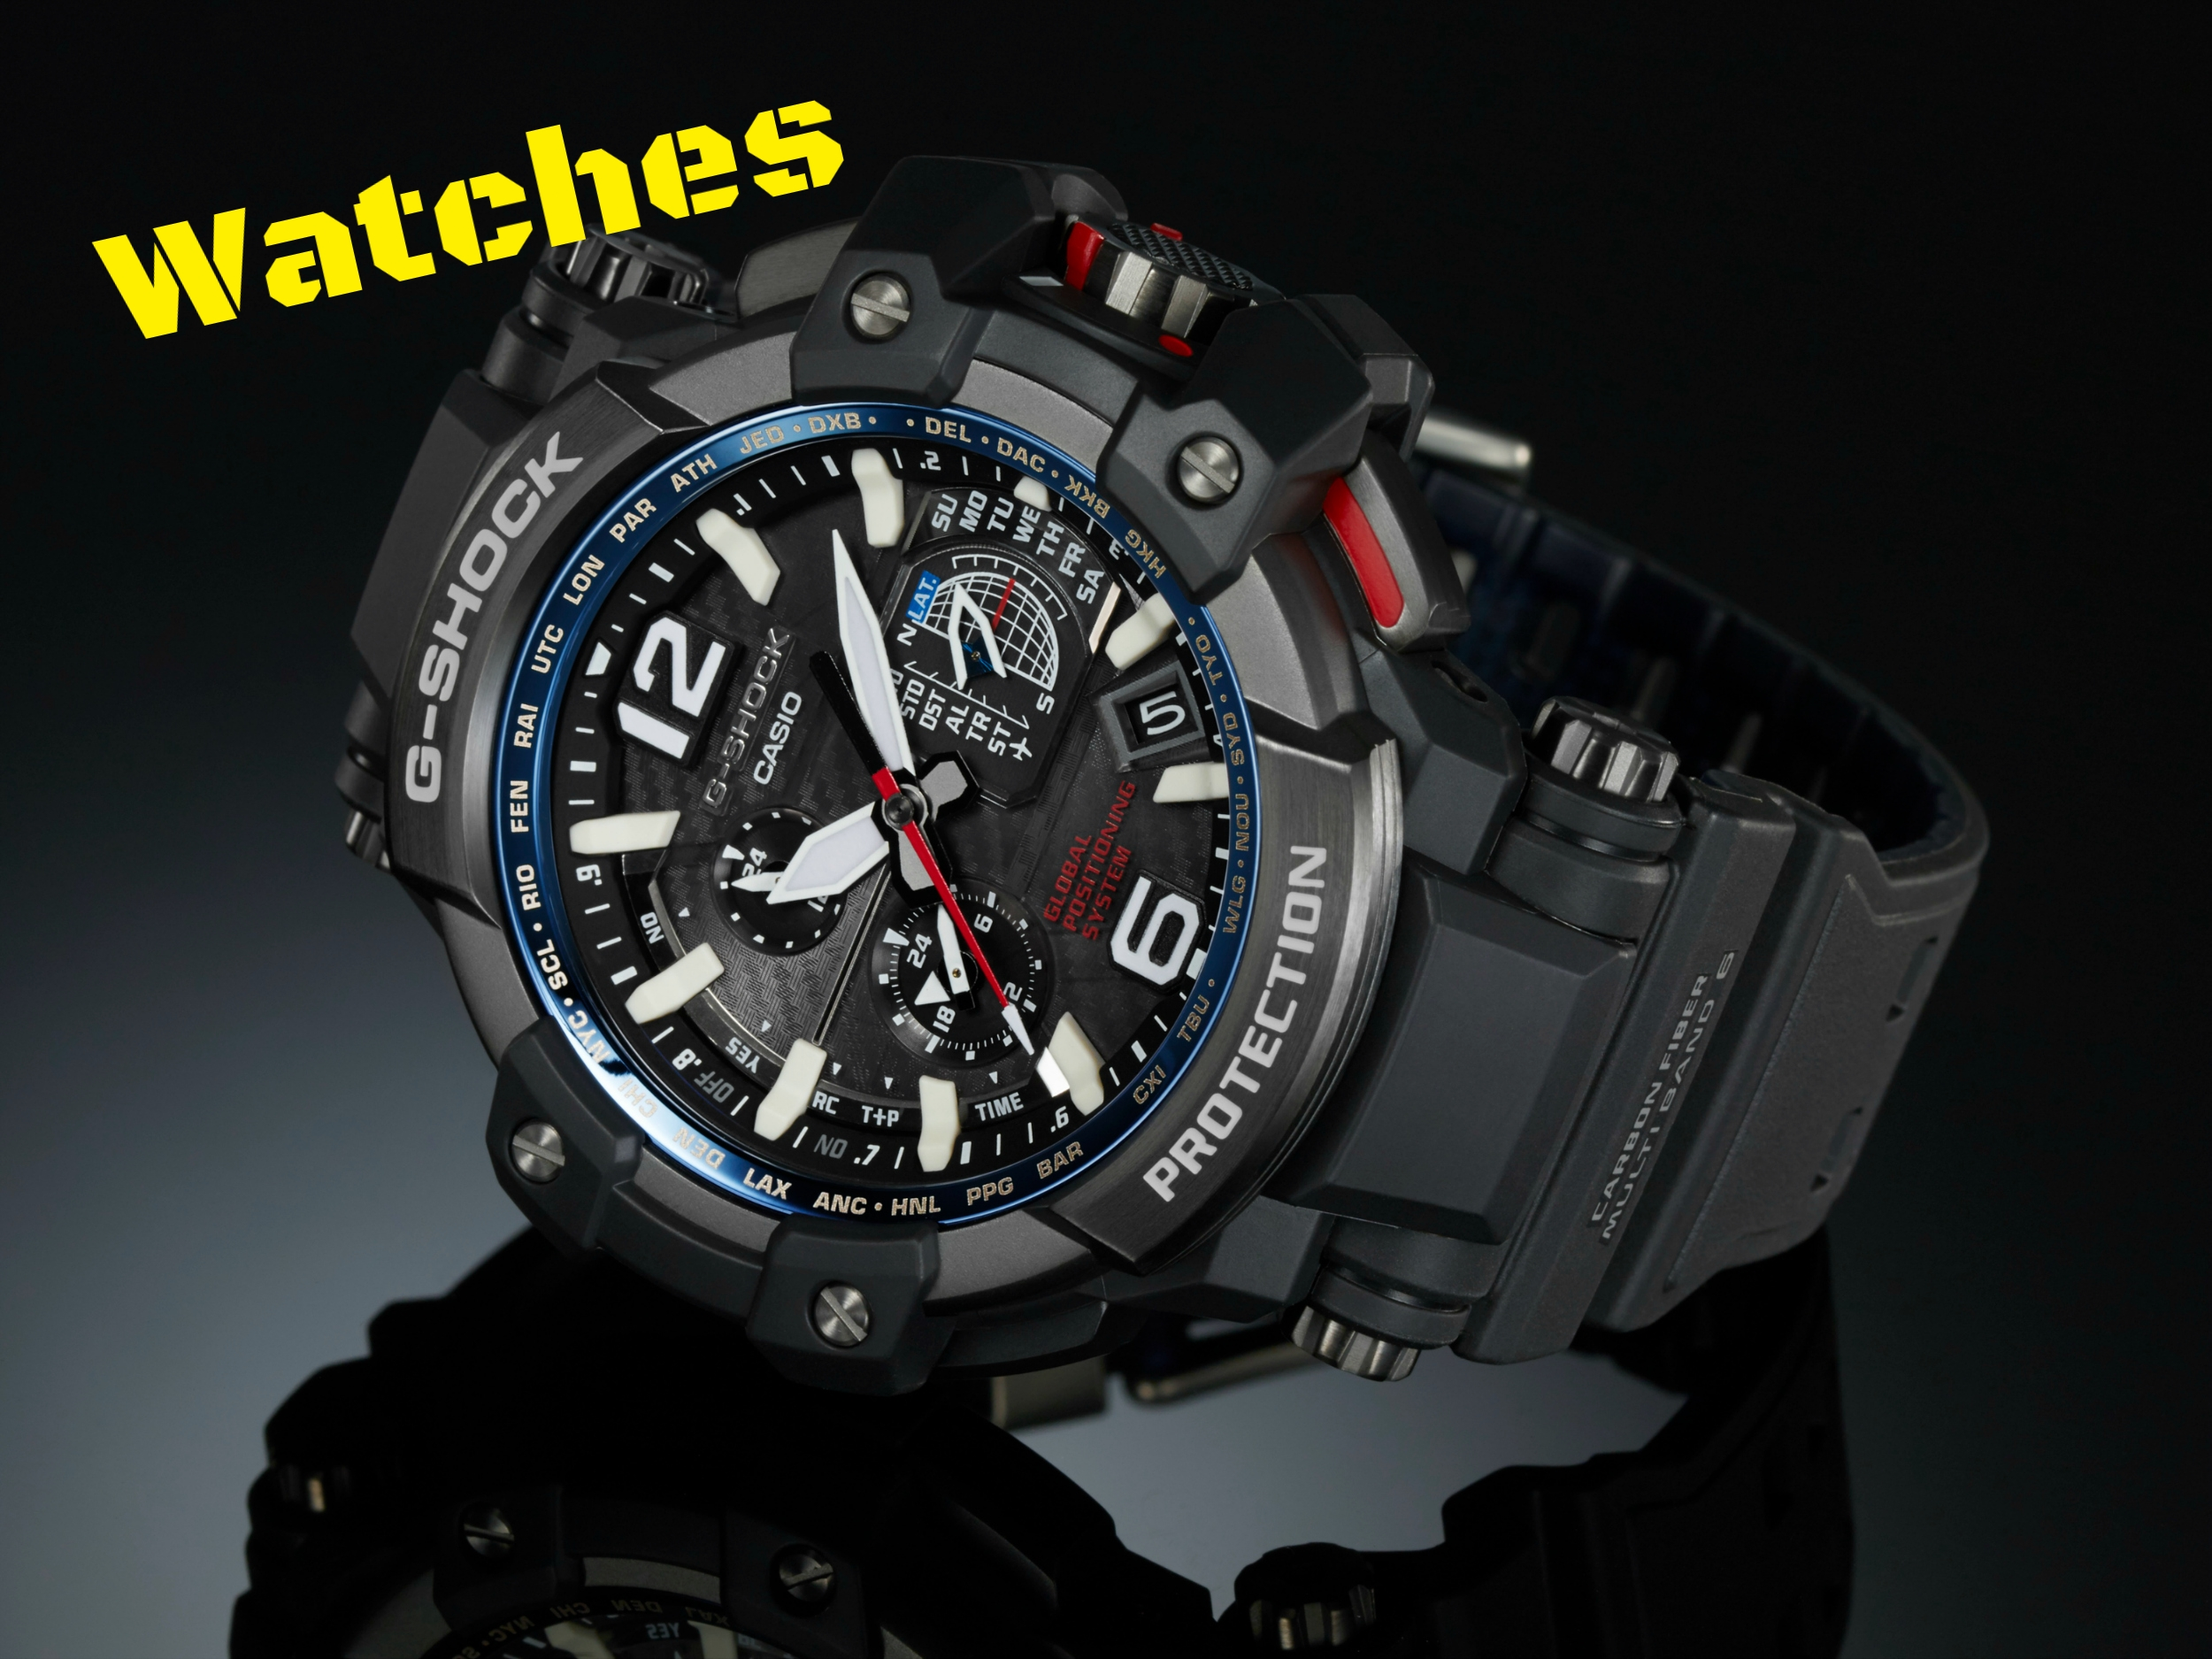 Everyone needs a good time piece to compliment their daily routine.  We proudly carry Casio watches to fit all needs; be it Law Enforcement, Military, or just time at the range / training, Casio's G-Shock line will handle your every day life with ease.  With their rugged design, tactical features, and all around good looks, they are a hard watch to beat!  We carry such models as:   -Casio G-Shock -Casio Pro Trek -Casio Gulfmaster -Casio Rangeman -Casio Mudman -Casio Mudmaster -Casio Master of G  and more!